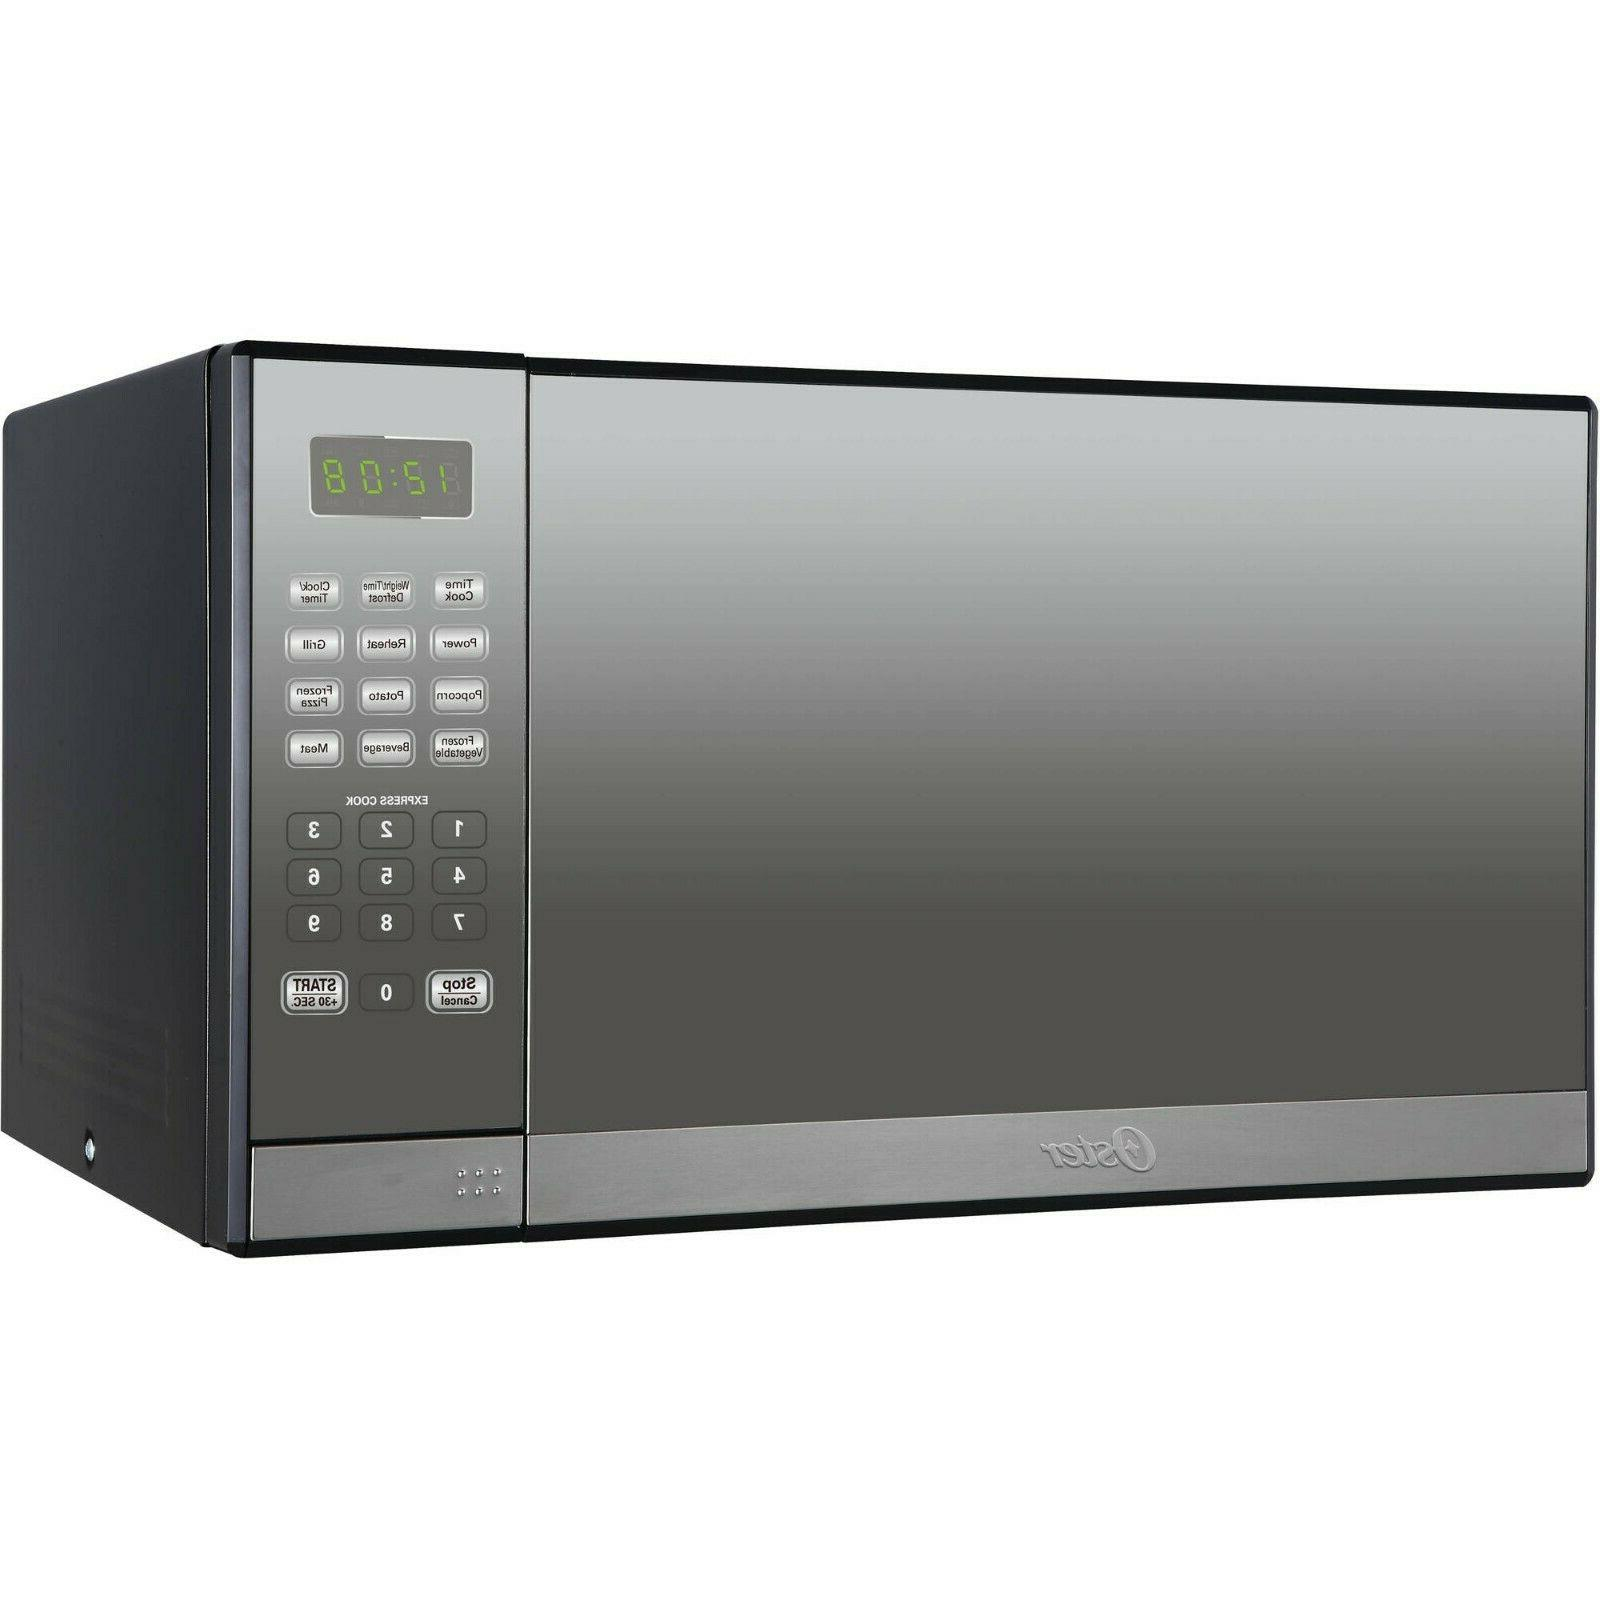 Mirror Finish Microwave Oven Oster 1.3 Cu. Ft. Stainless Ste